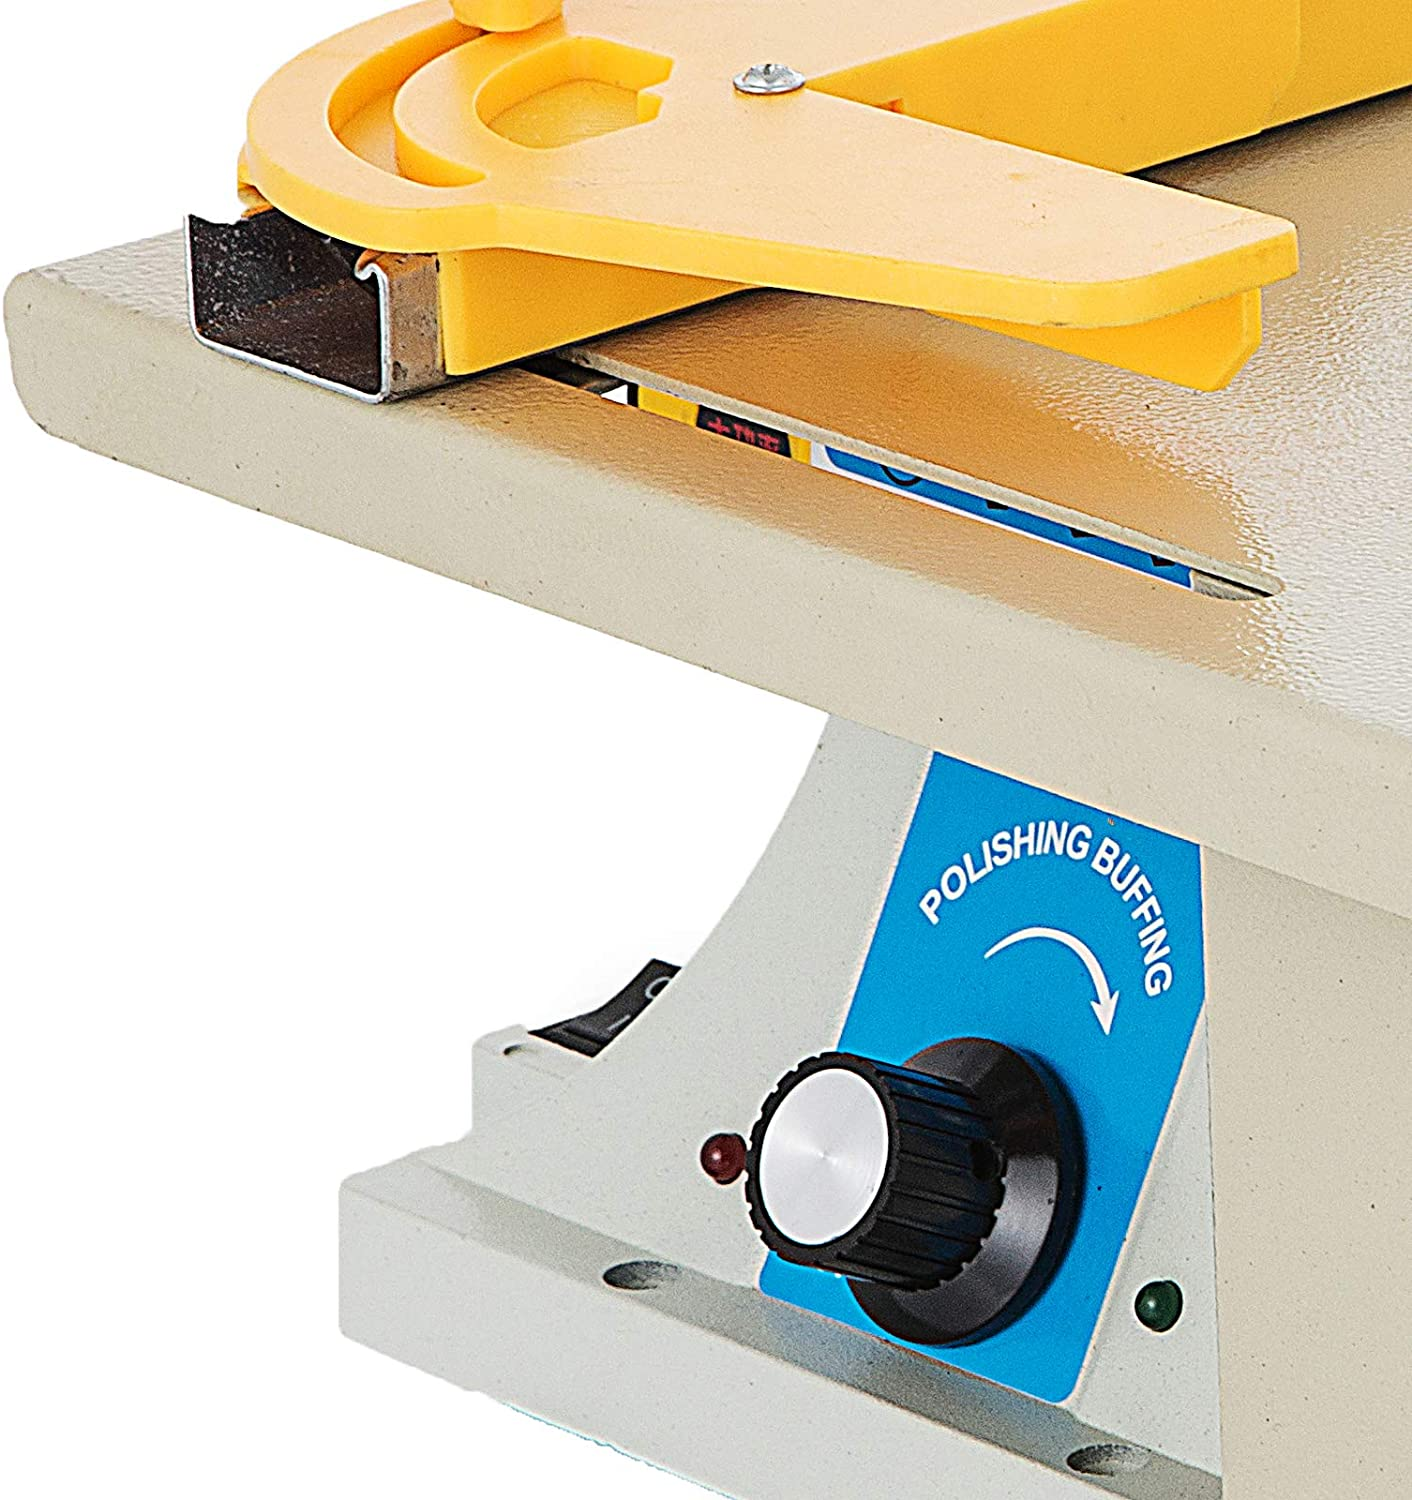 Mophorn carving machine Table Saws product image 7